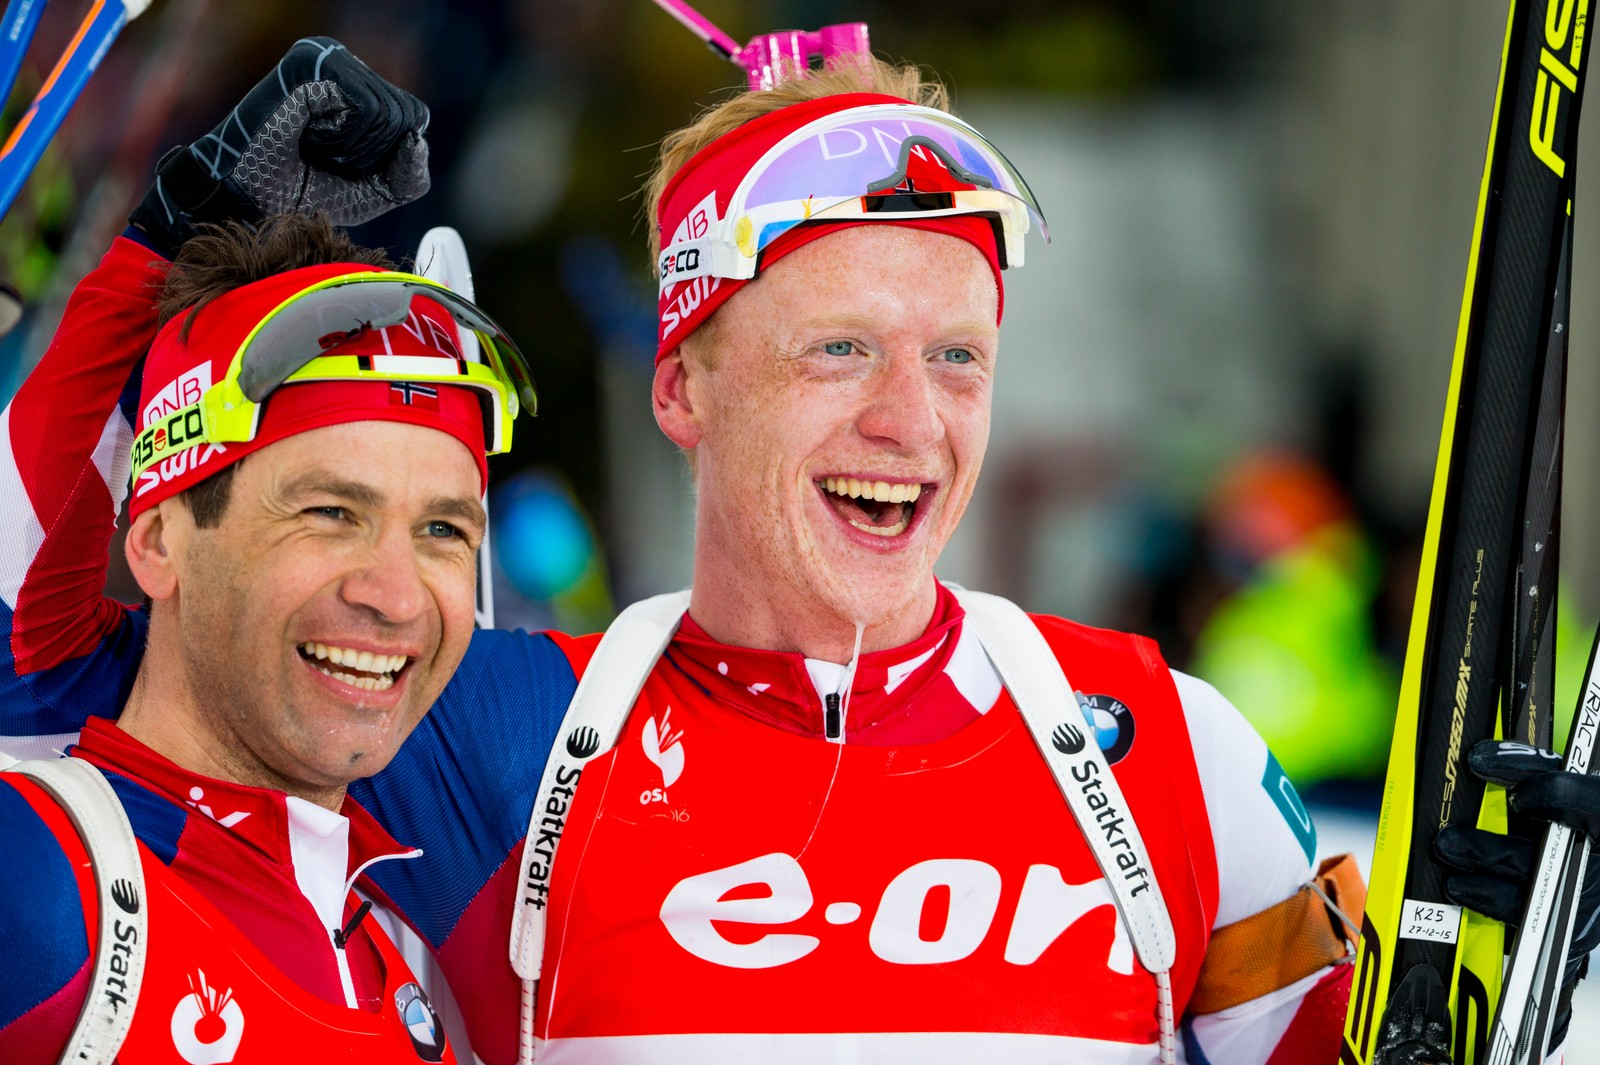 Norway's Johannes Thingnes Bø and Ole Einar Bjørndalen (left) celebrate their gold and bronze medals in the 15 km pursuit event in Holmenkollen 13 March.